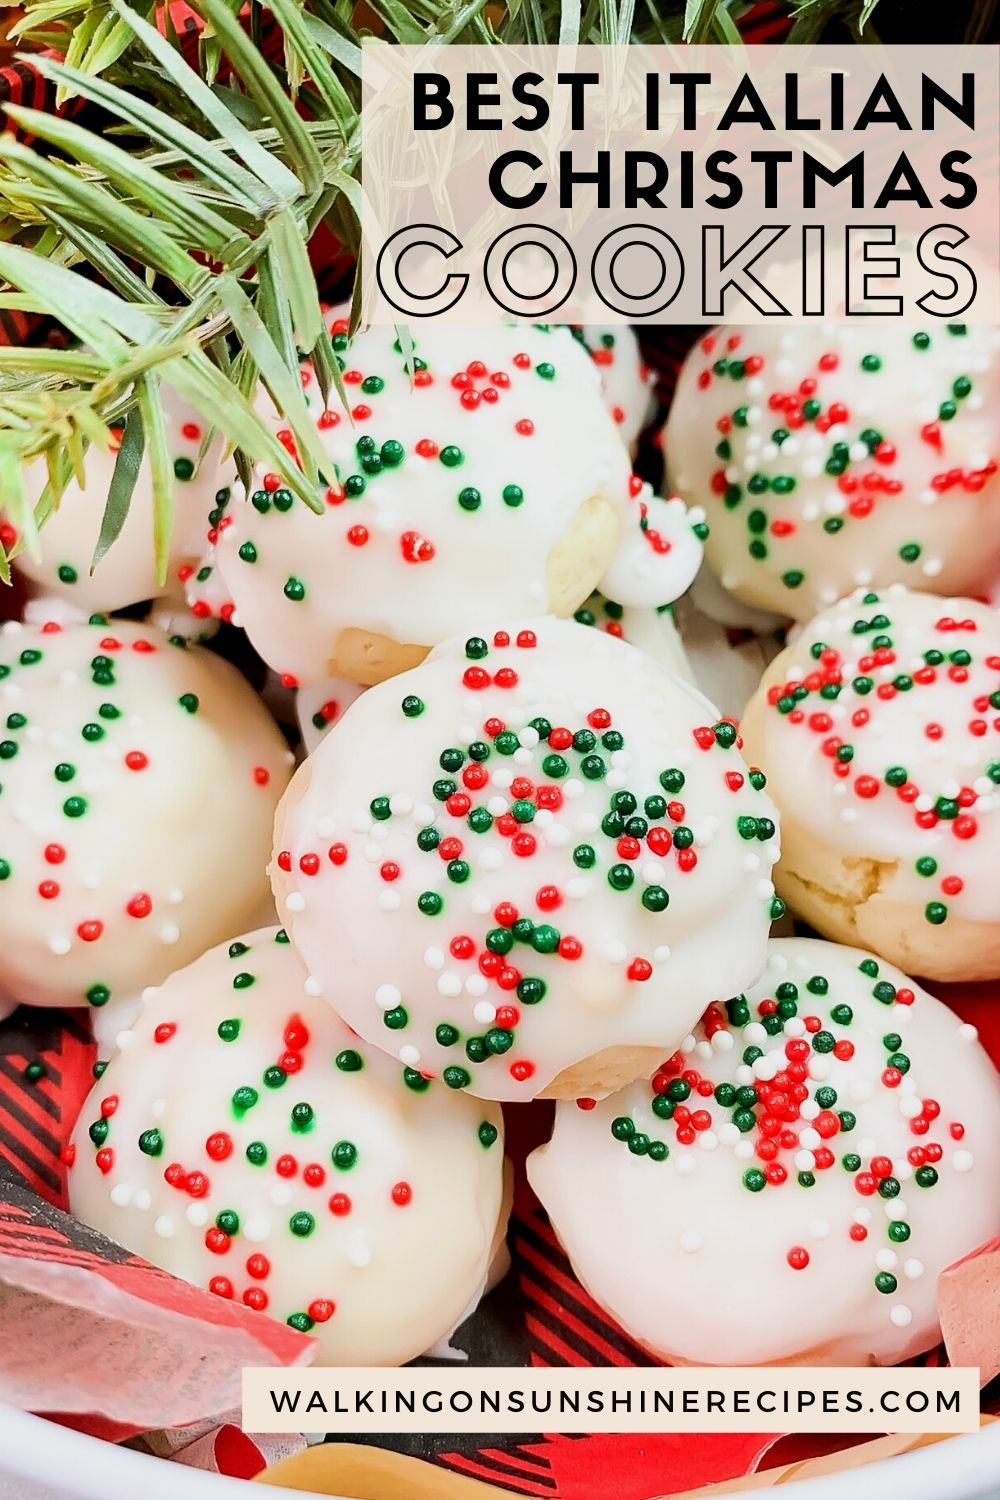 Glazed lemon cookies with red, green and white sprinkles.